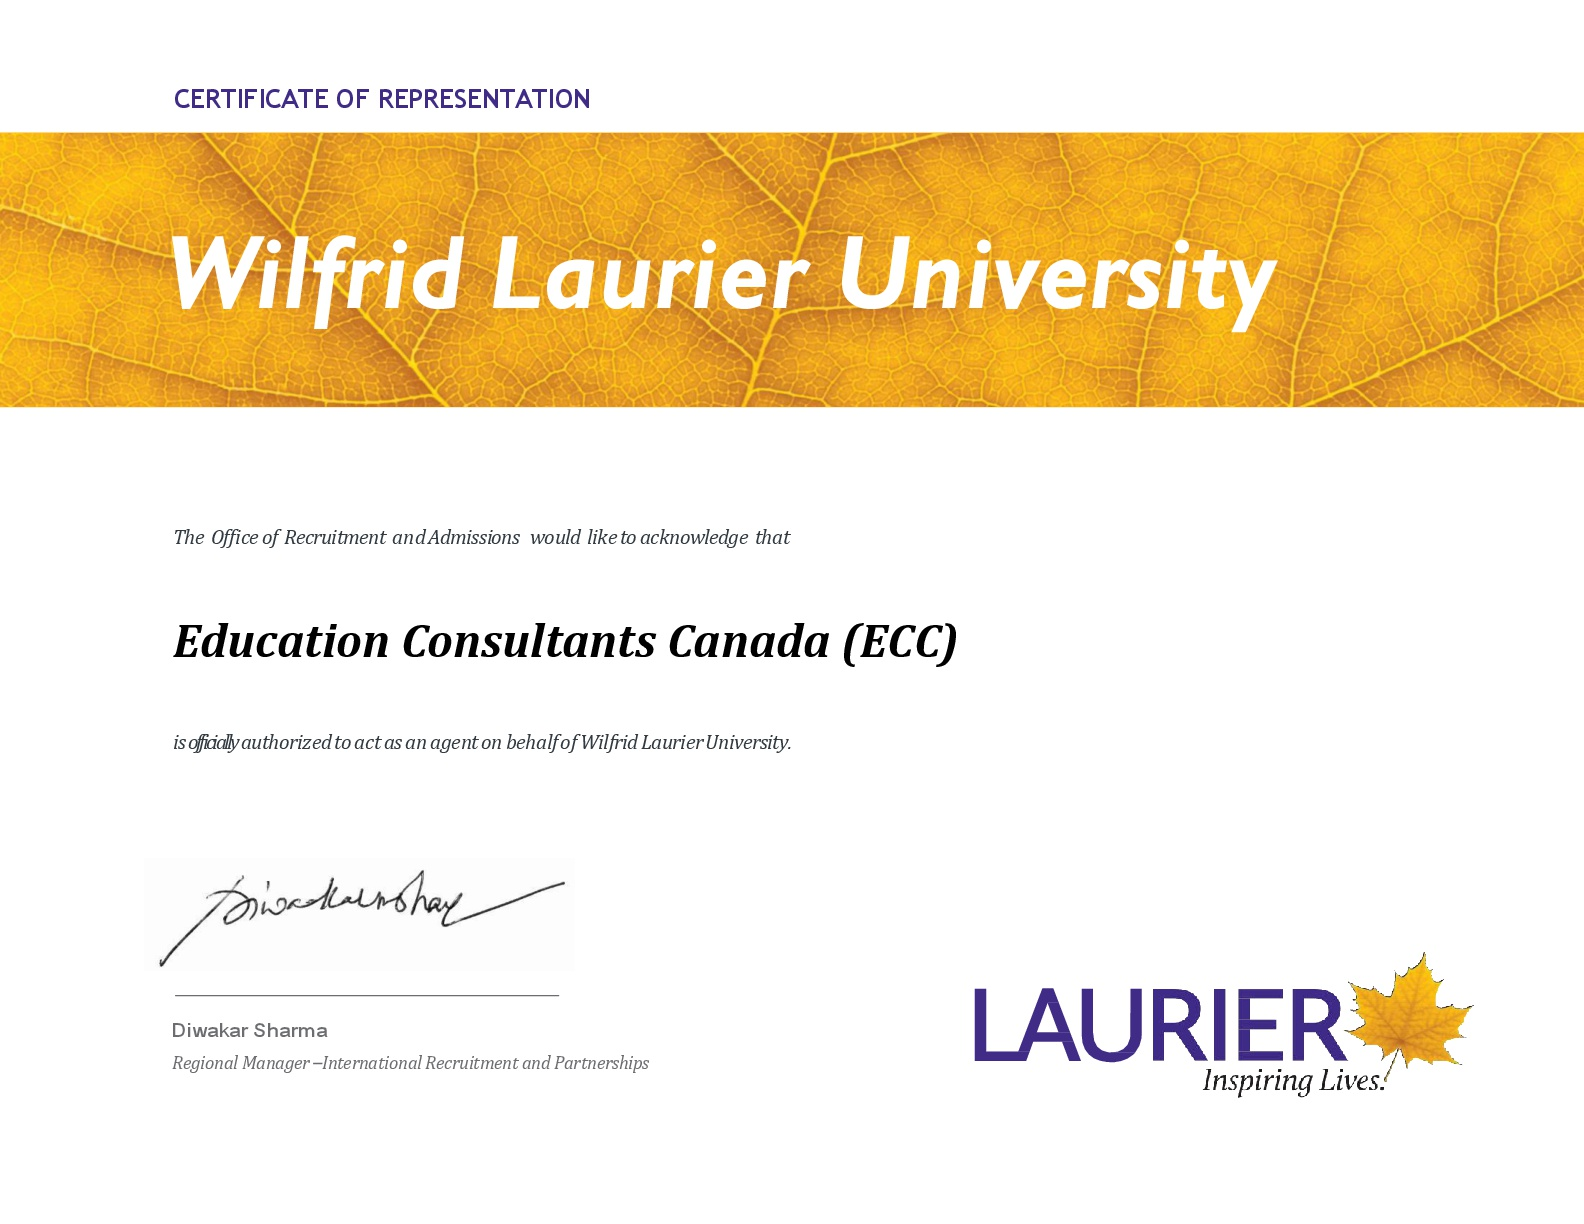 Education Consultants Canada Authorized recruiter of  Wilfrid Laurier University for international students recruitment